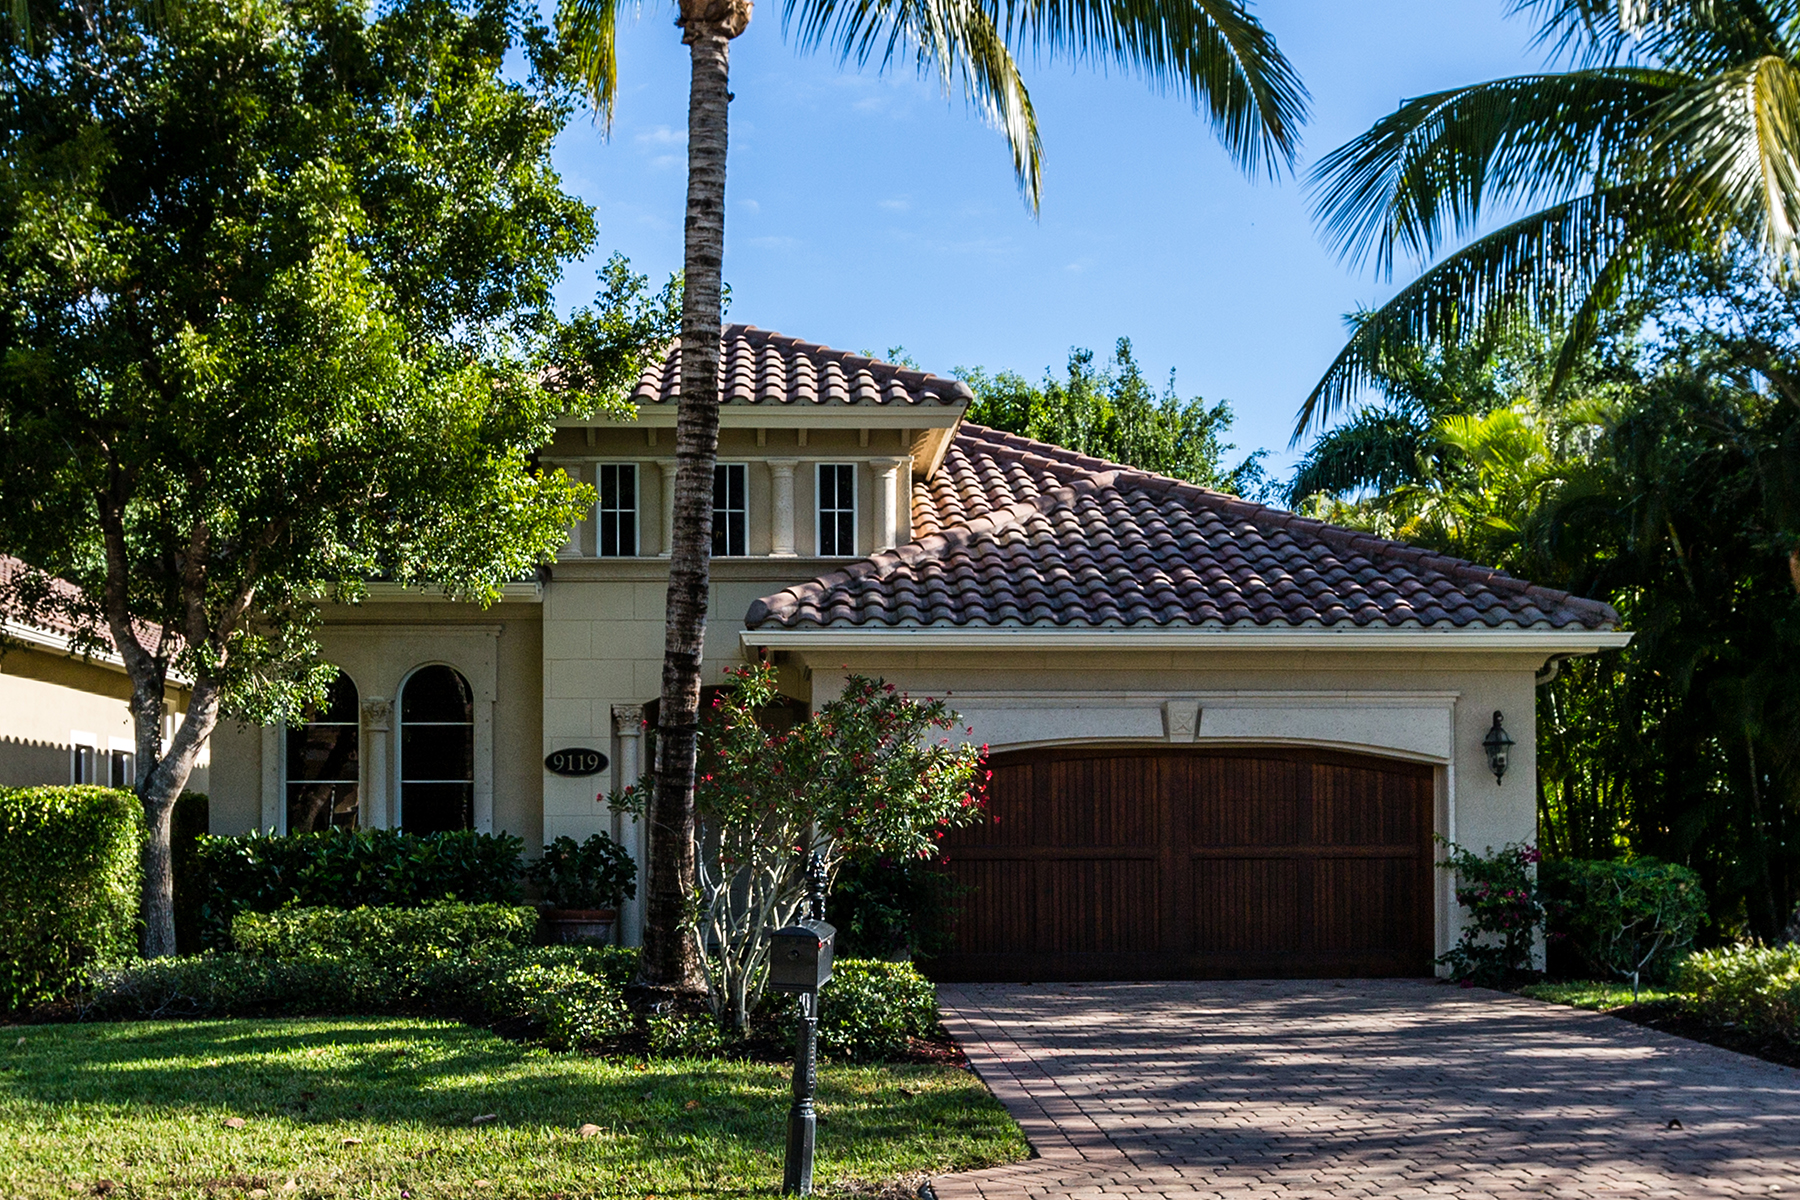 Single Family Home for Sale at FIDDLERS CREEK 9119 Cherry Oaks Ln, Naples, Florida 34114 United States